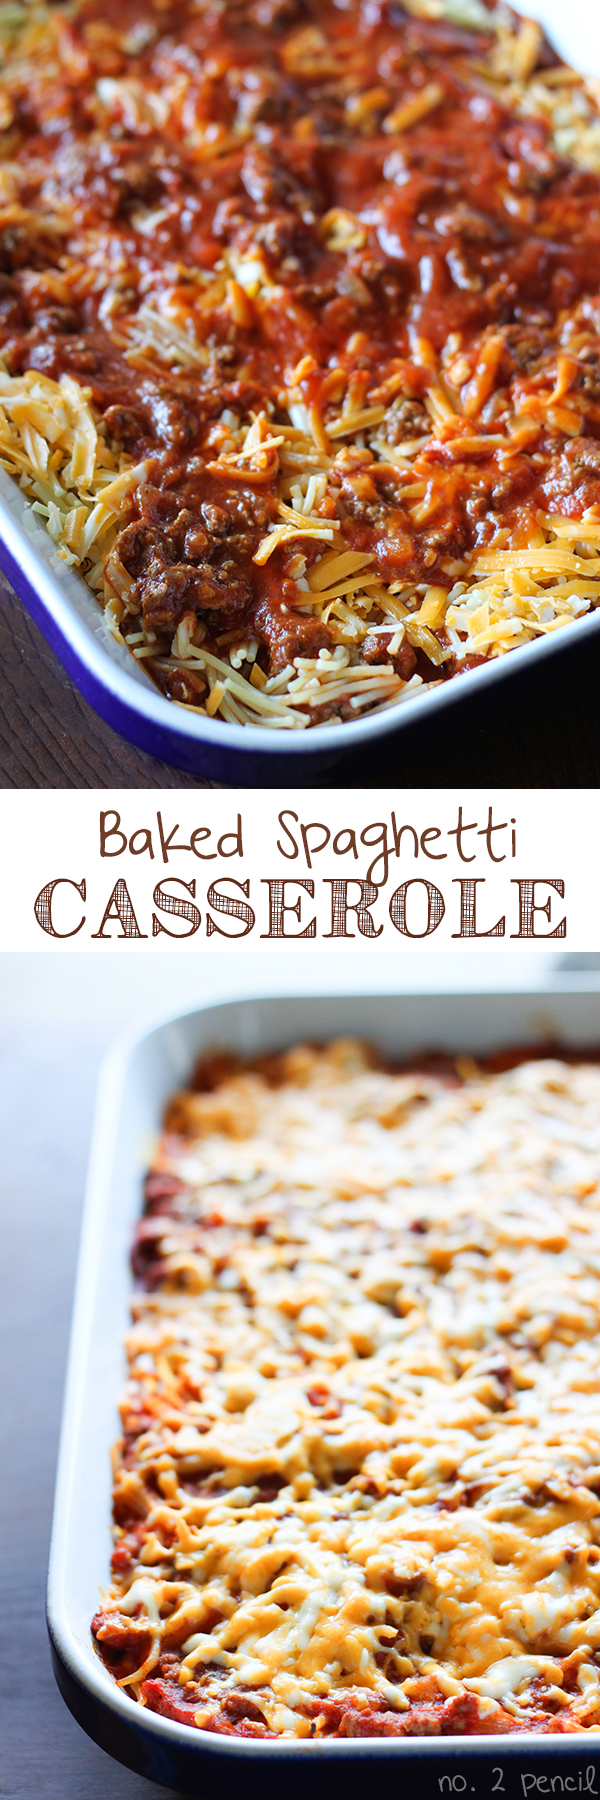 Baked Spaghetti - Bite sized pieces of spaghetti baked together with ...